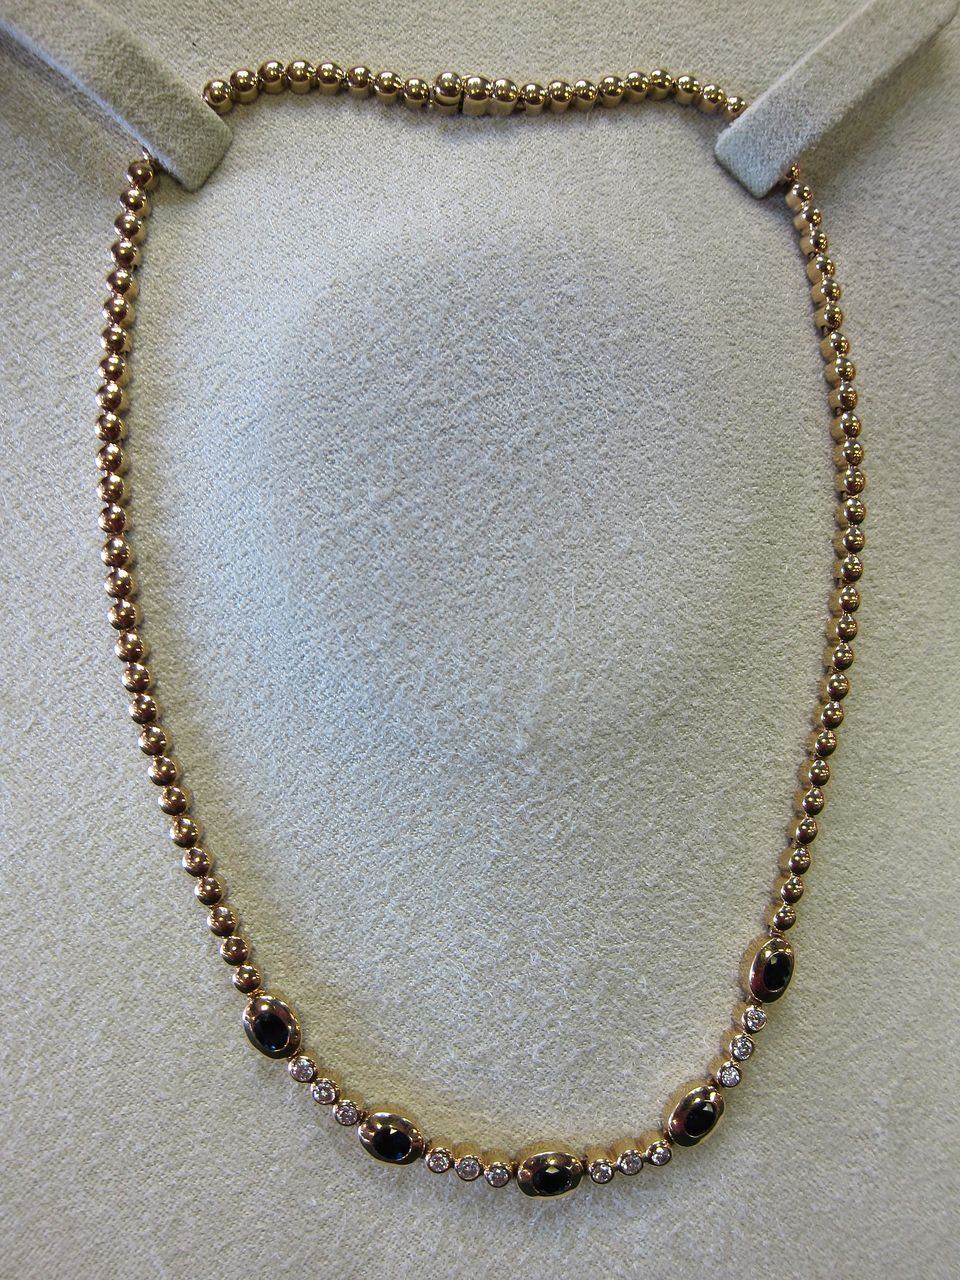 s 14 kt vs sapphire 18 inch necklace from